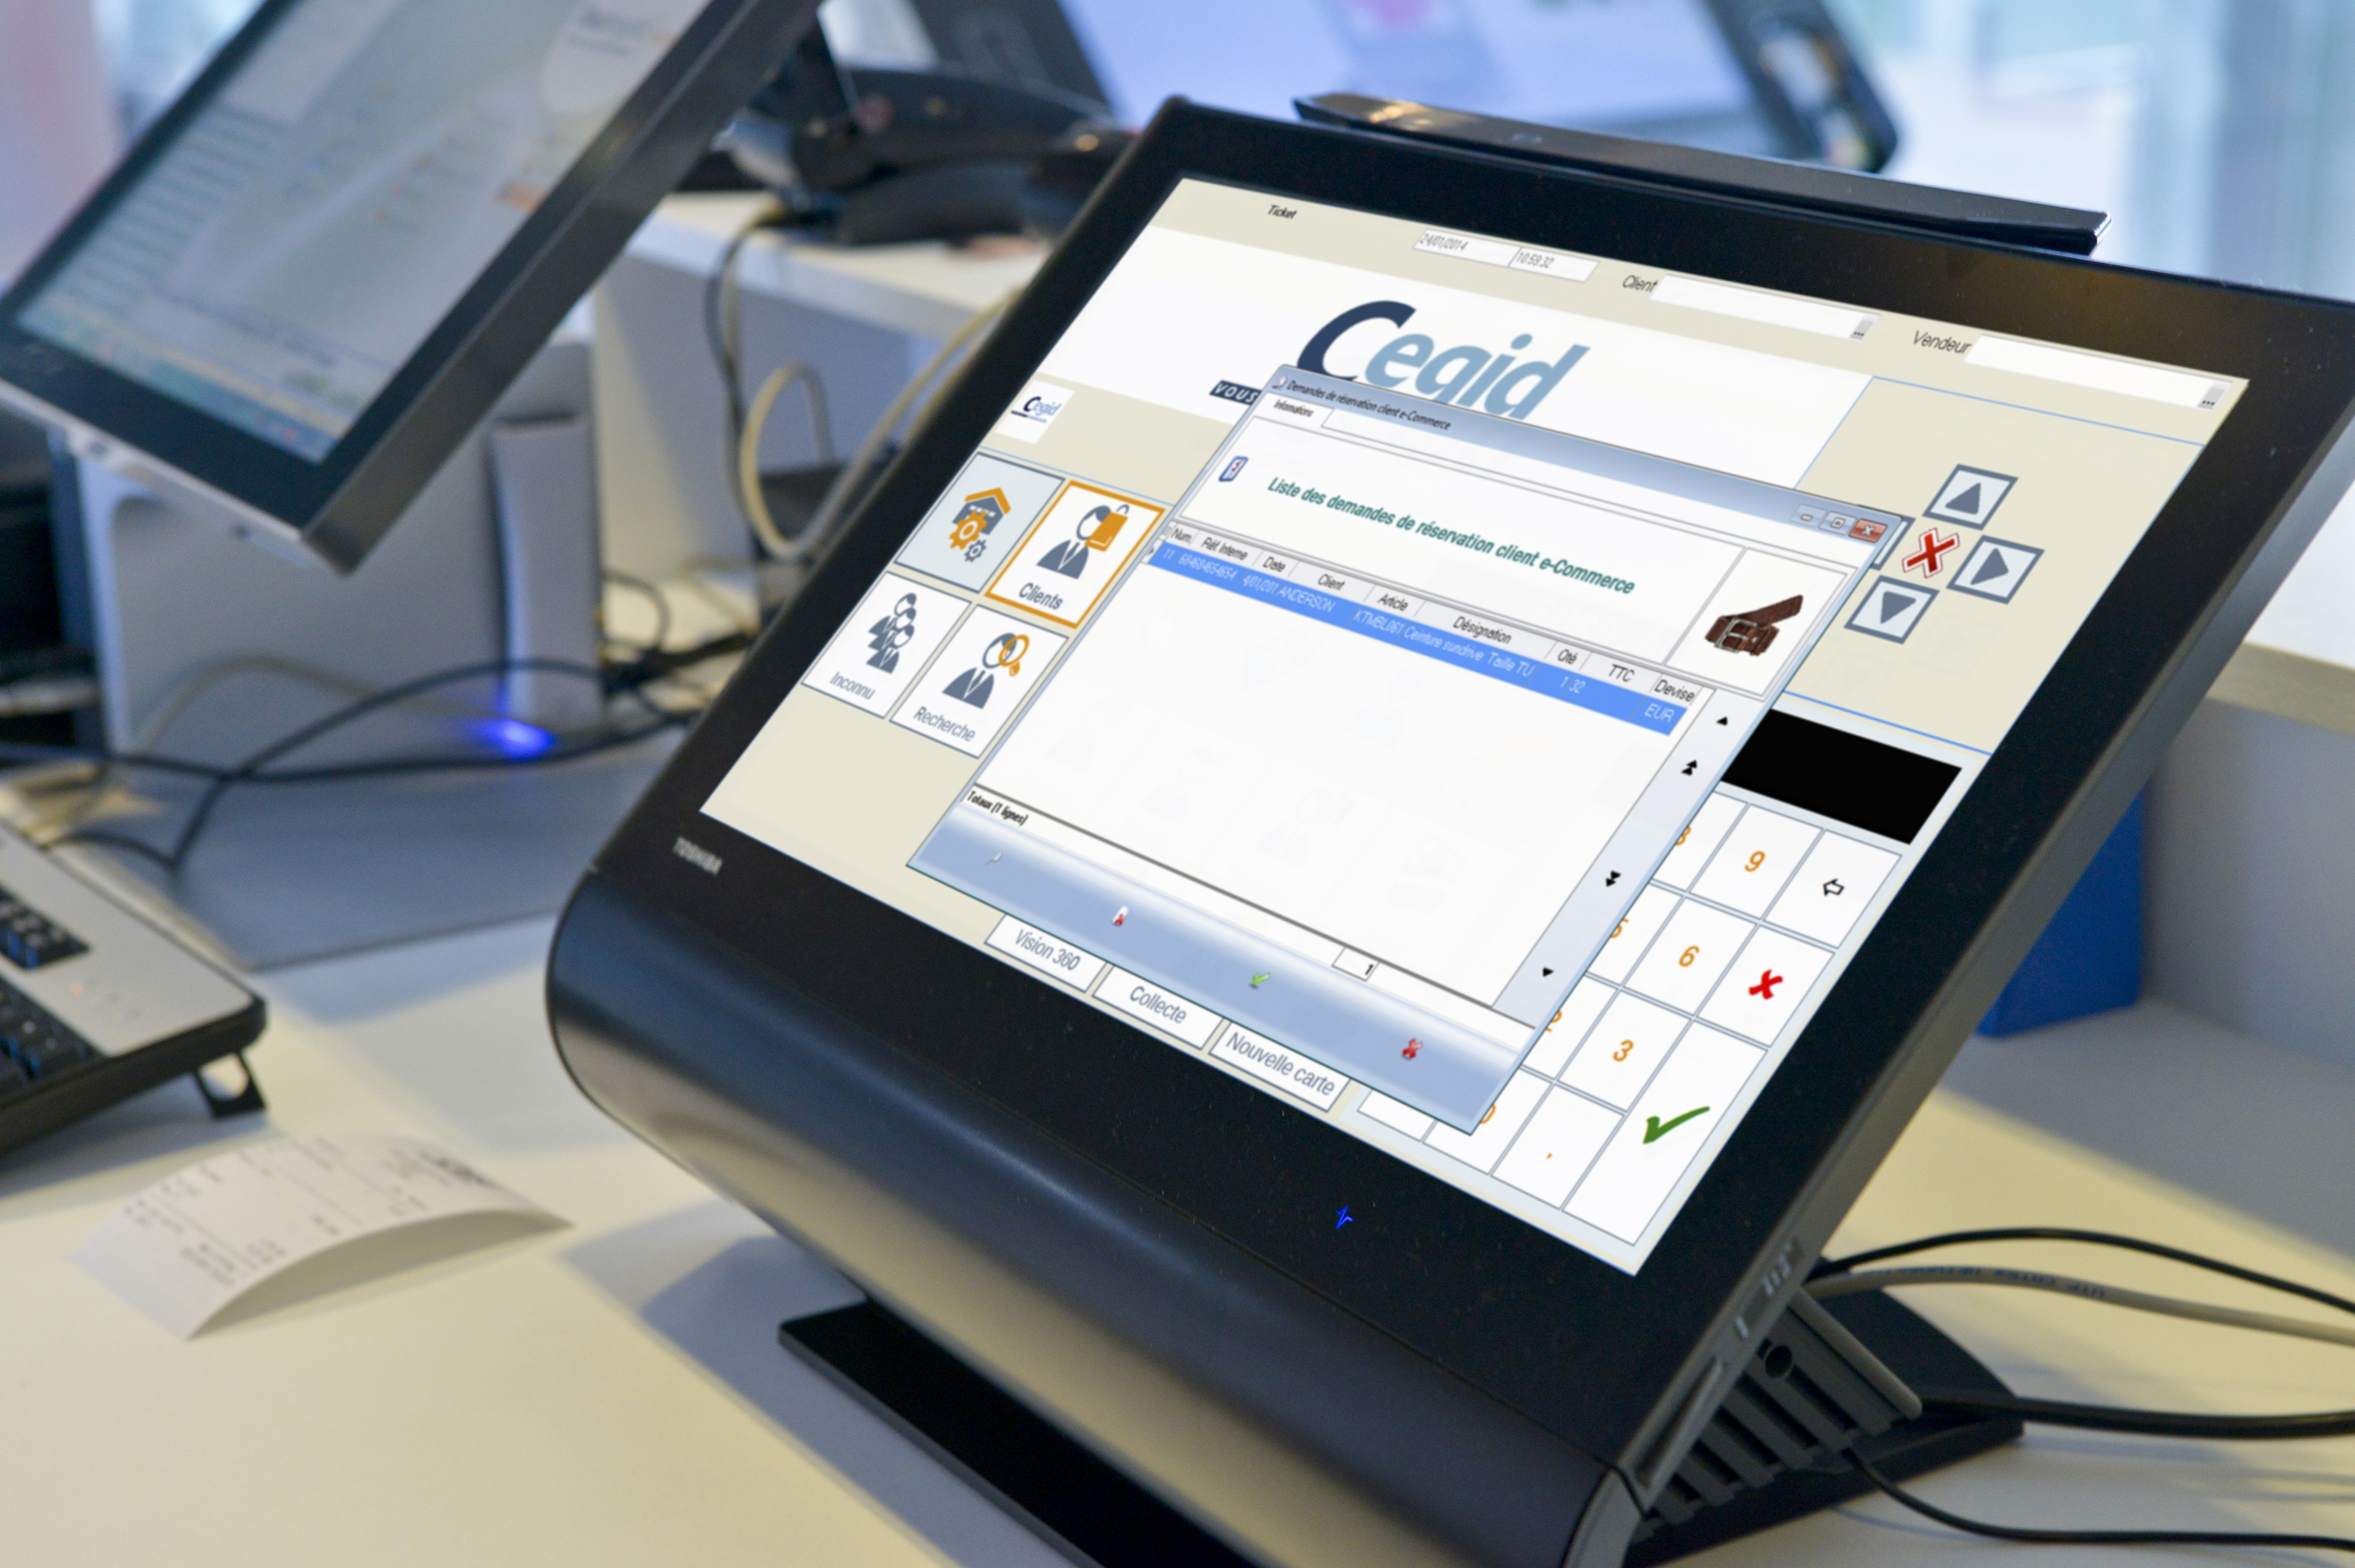 WHAT TO CONSIDER WHEN SELECTING RETAIL POS SOFTWARE